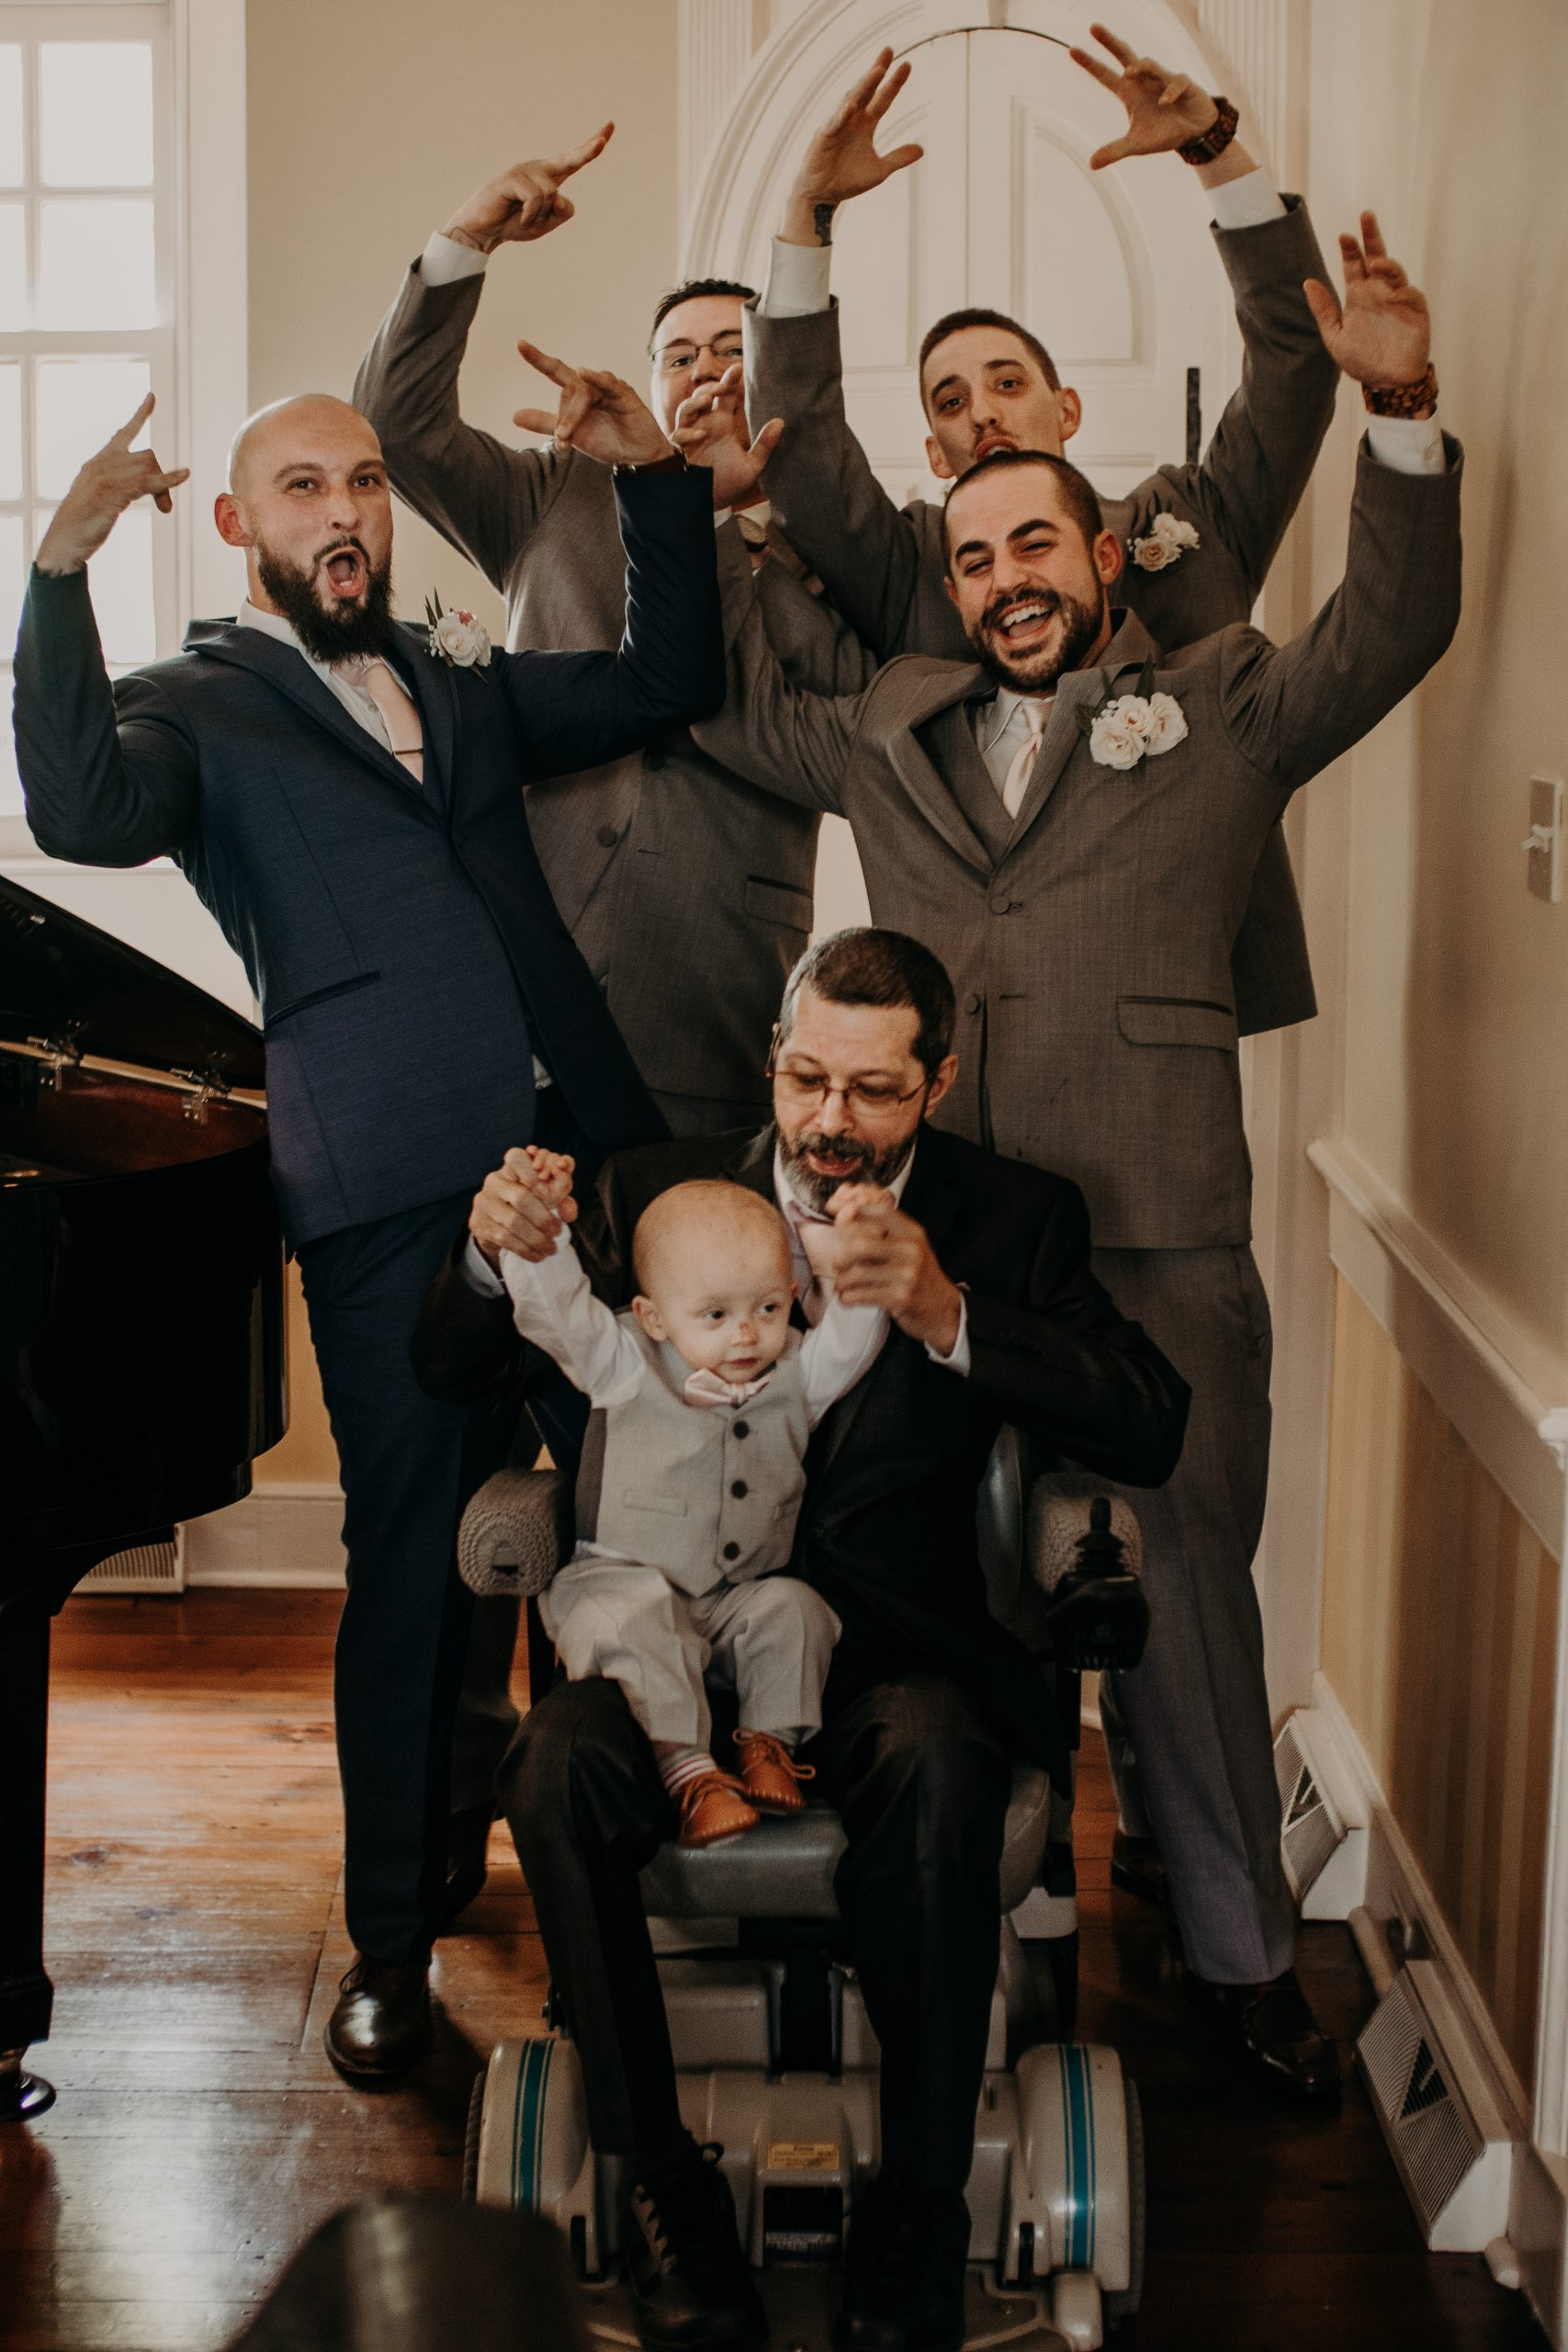 The groomsmen are ready to party. Setting himself apart, the groom wears a navy blue suite with pink tie, as the groomsmen sport grey suites with silver ties. Christine and Richard wed on the Chestnut Hill Villa grounds on May of 2019. This organic ethereal styled wedding was captured by Garnet Dahlia Photography and featured on Dream Weddings.